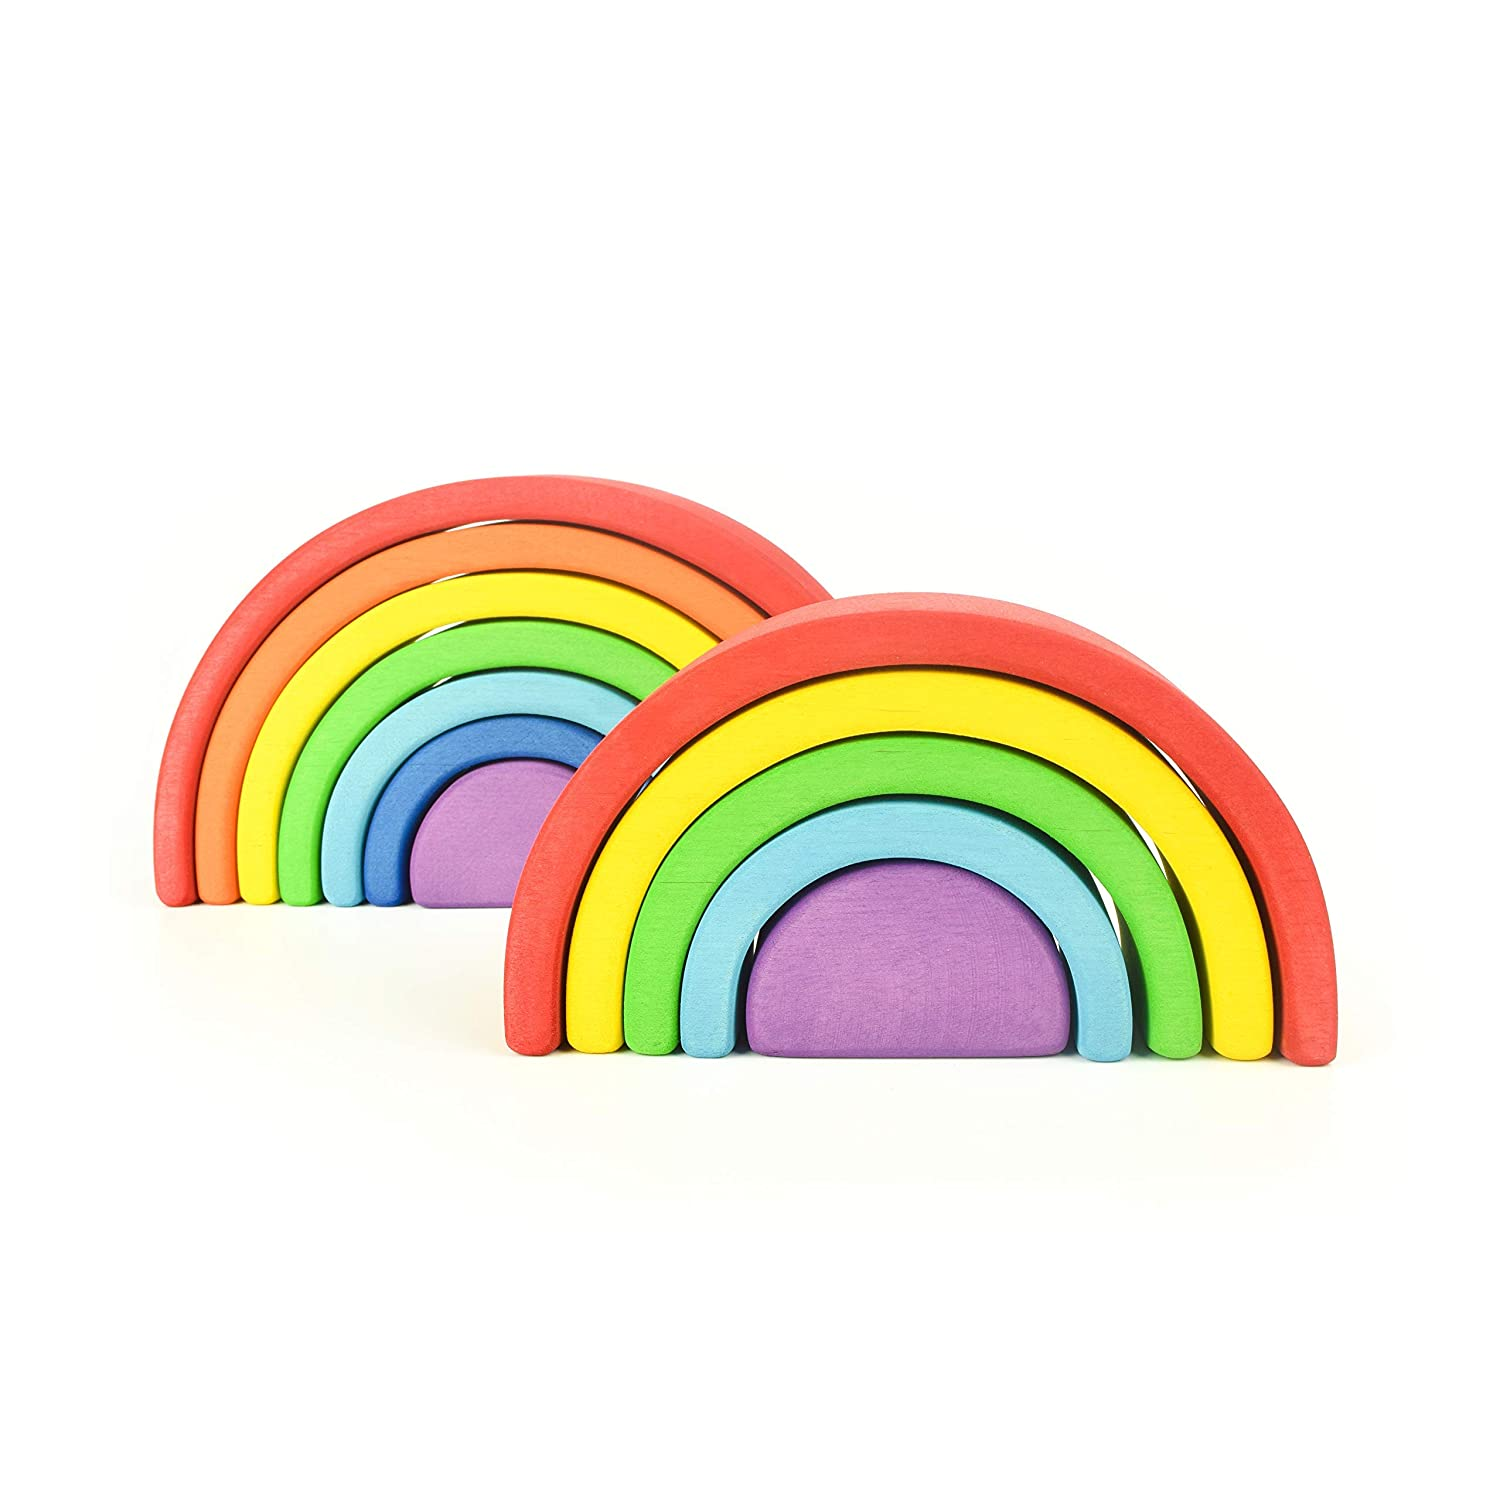 Montessori WOODEN RAINBOW STACKER Waldorf Stacking Game Learning Toy Creative Educational Toys for Kids Baby Toddlers Nesting Puzzle Building Blocks Stacking /& Nesting Rainbow Tunnel Stacker Toy